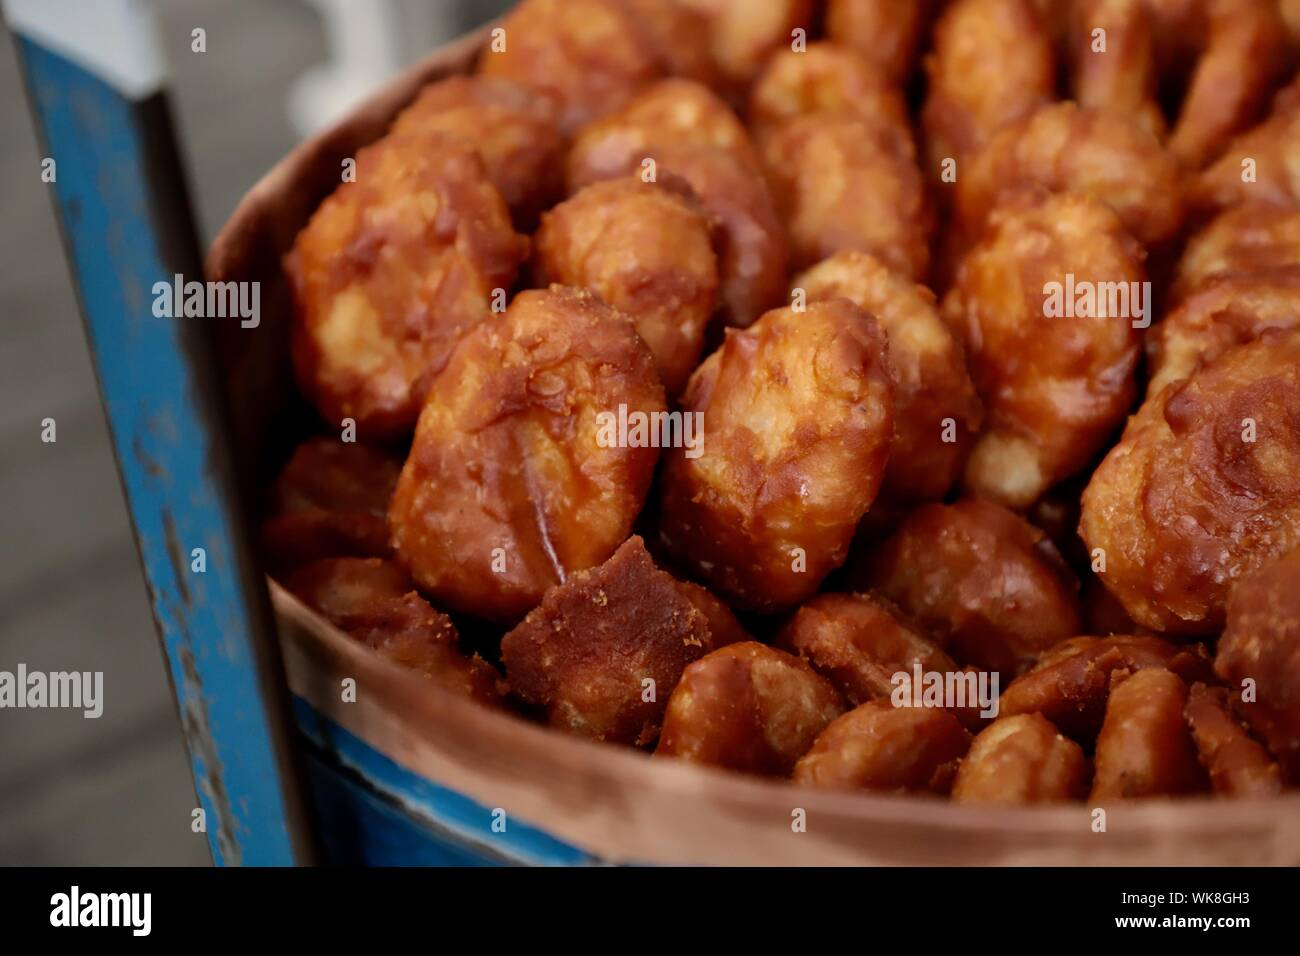 Gemblong. Fried glutinous rice buns from West Java. Stock Photo